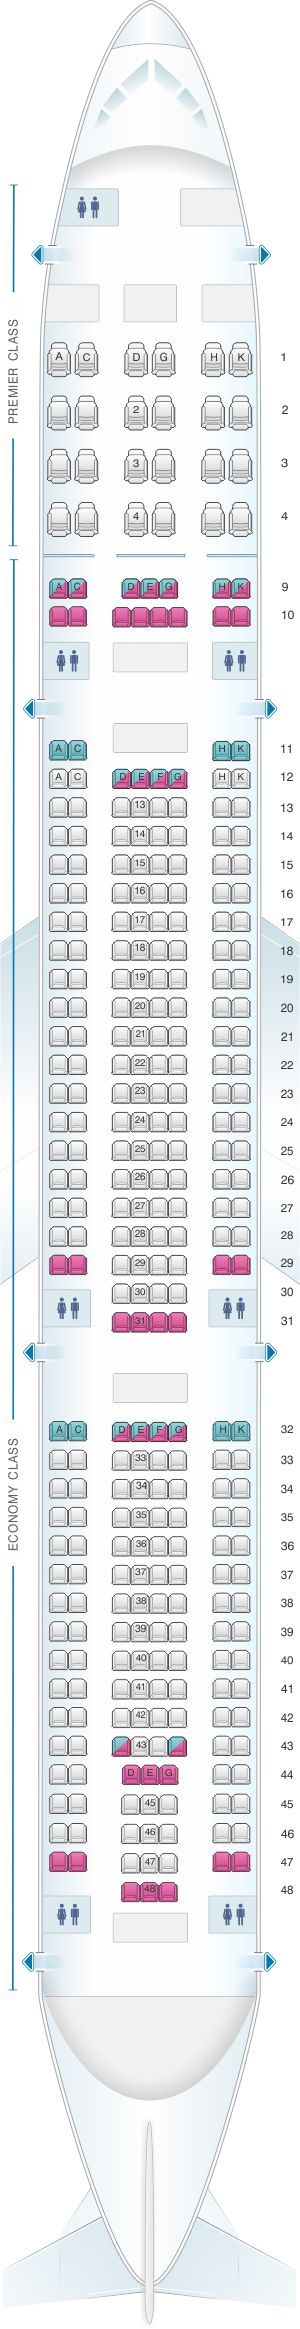 Seat Map Aer Lingus Airbus A330 300